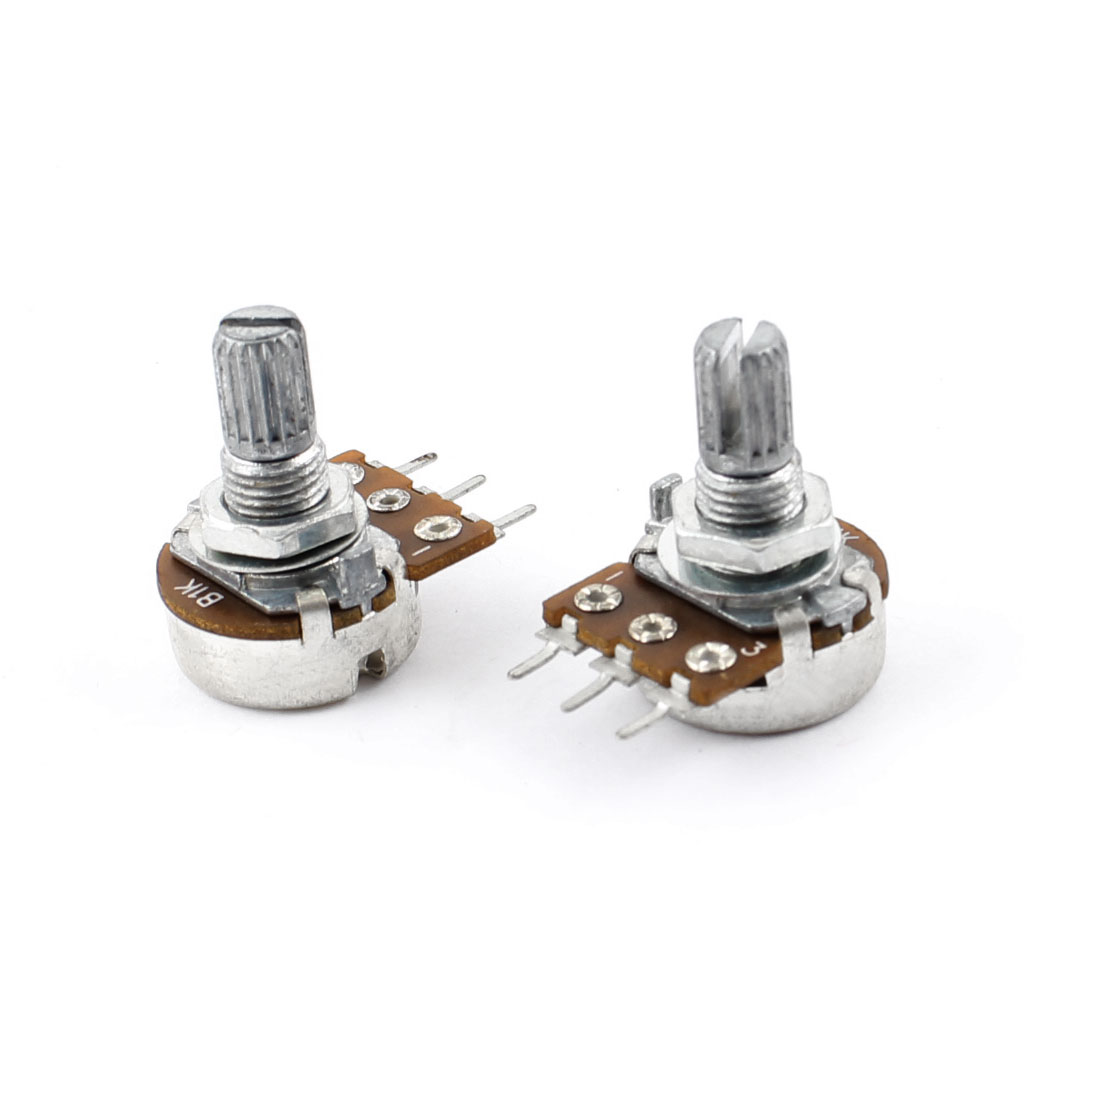 Rotary One Linear Type 3 Terminals Potentiometer 1K Ohm 2 Pcs